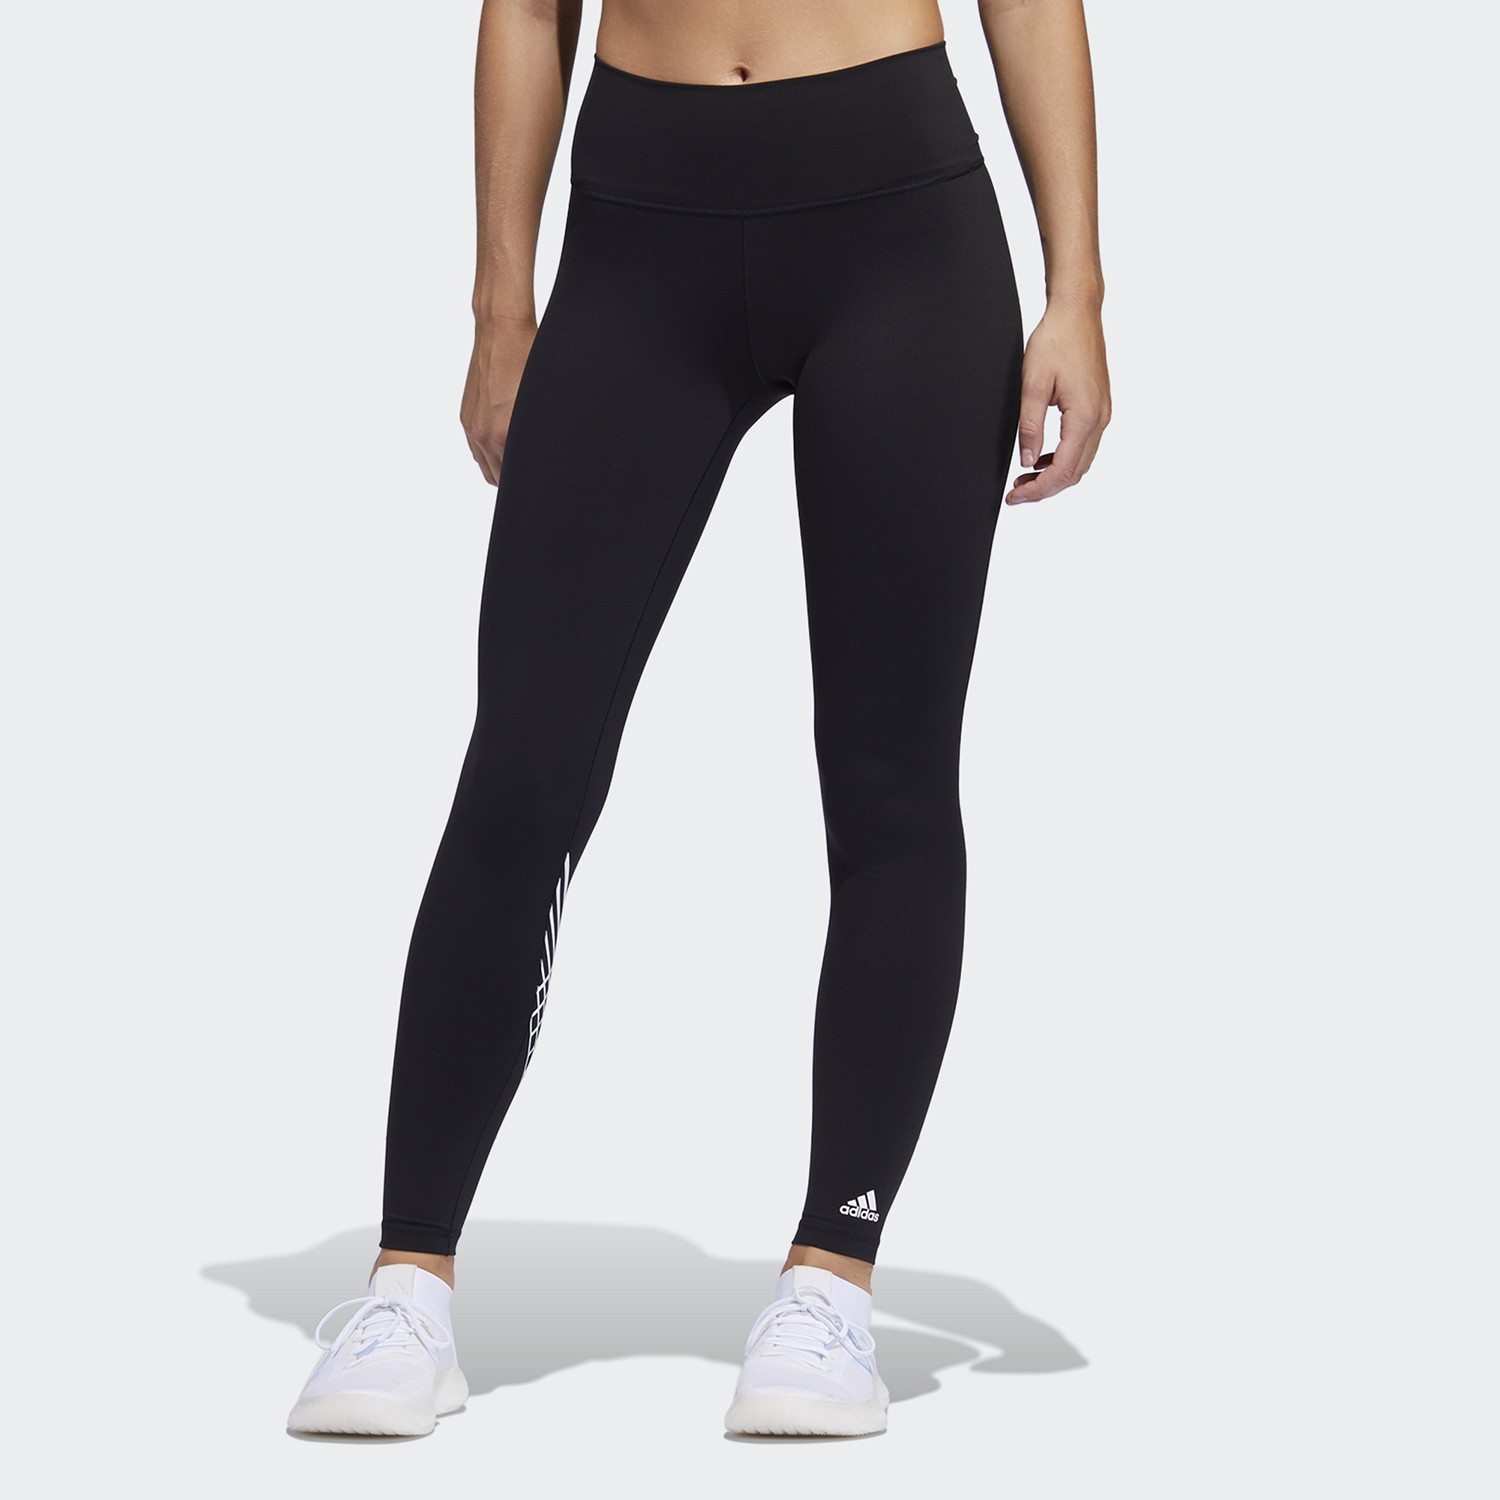 adidas Performance Believe This 2.0 Torch Long Γυναικείο Κολάν (9000046203_12487)